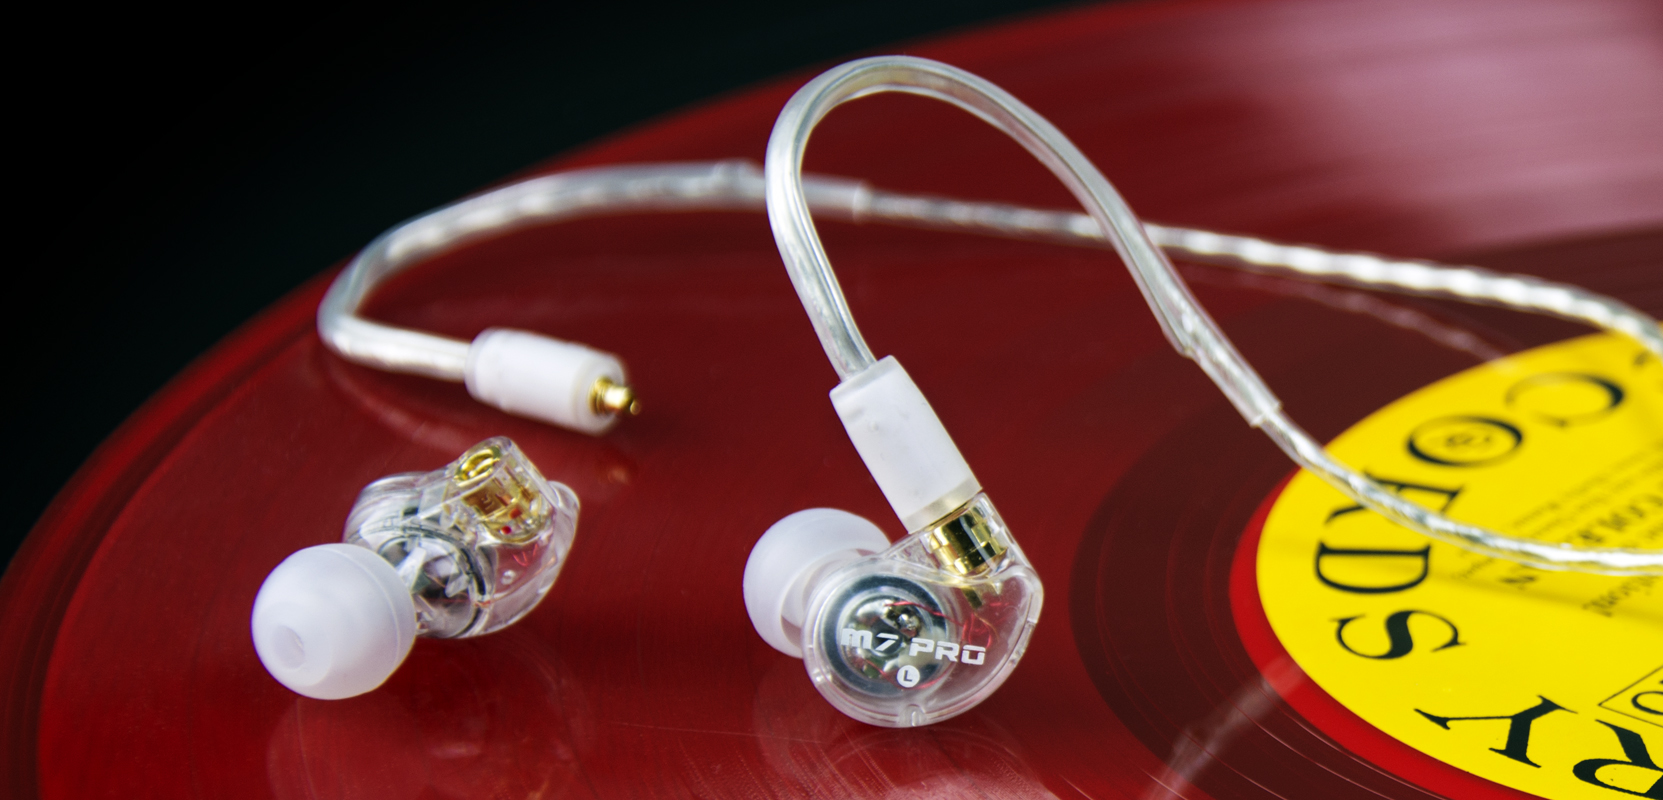 In ear monitors with one detached cable on a red vinyl record background